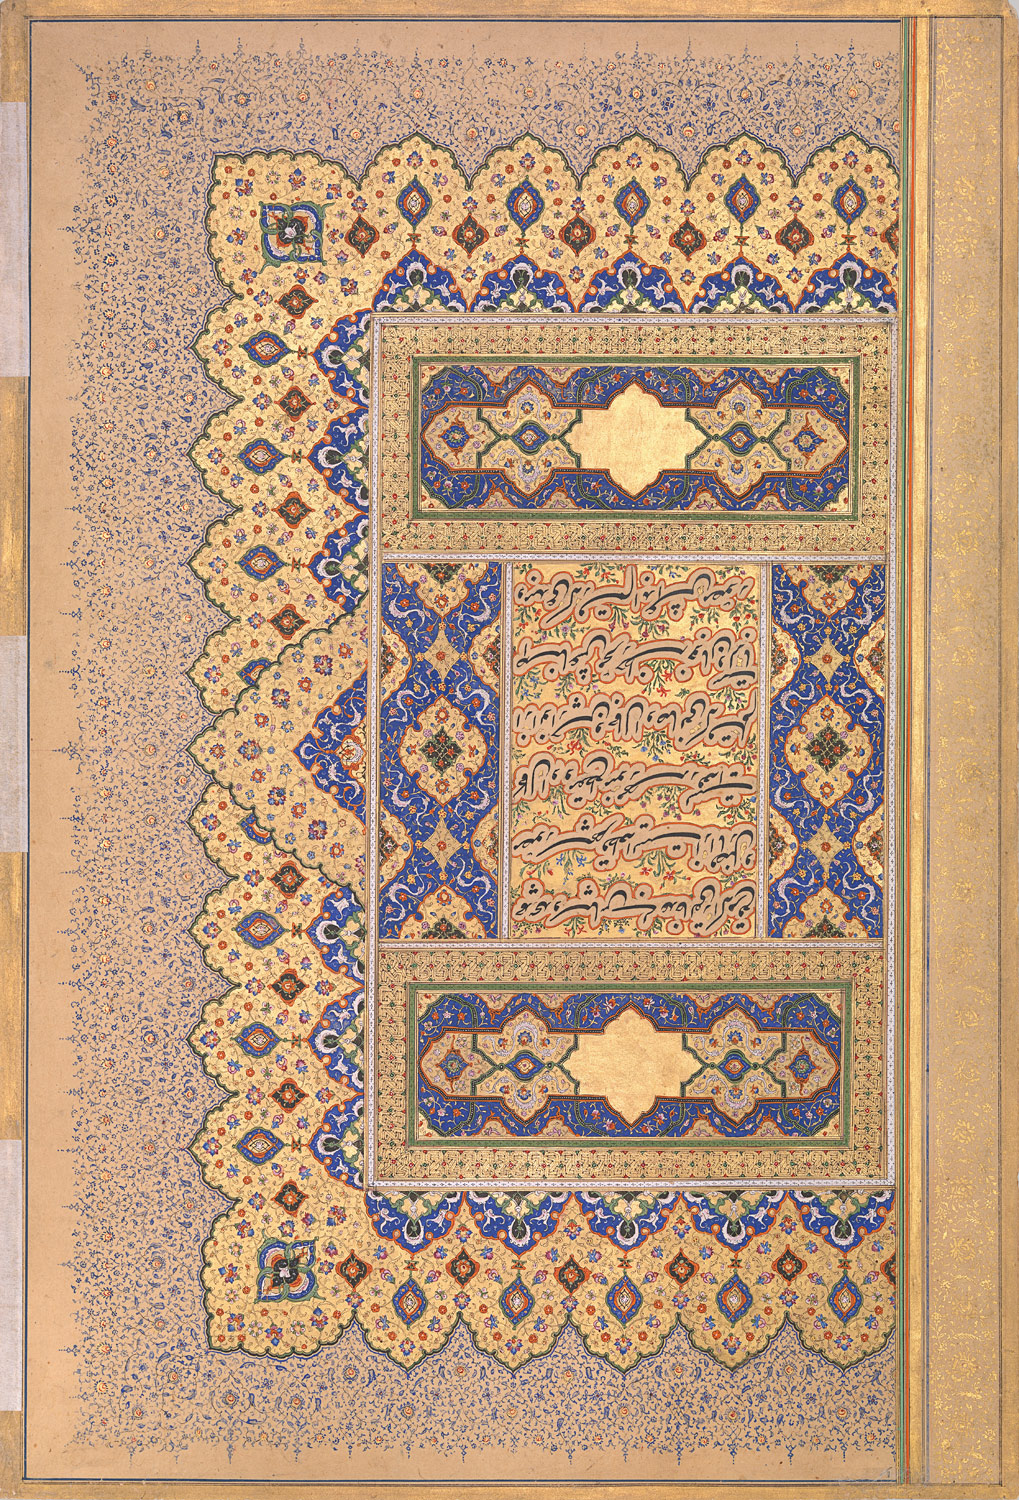 Unwan: Leaf from the Shah Jahan Album